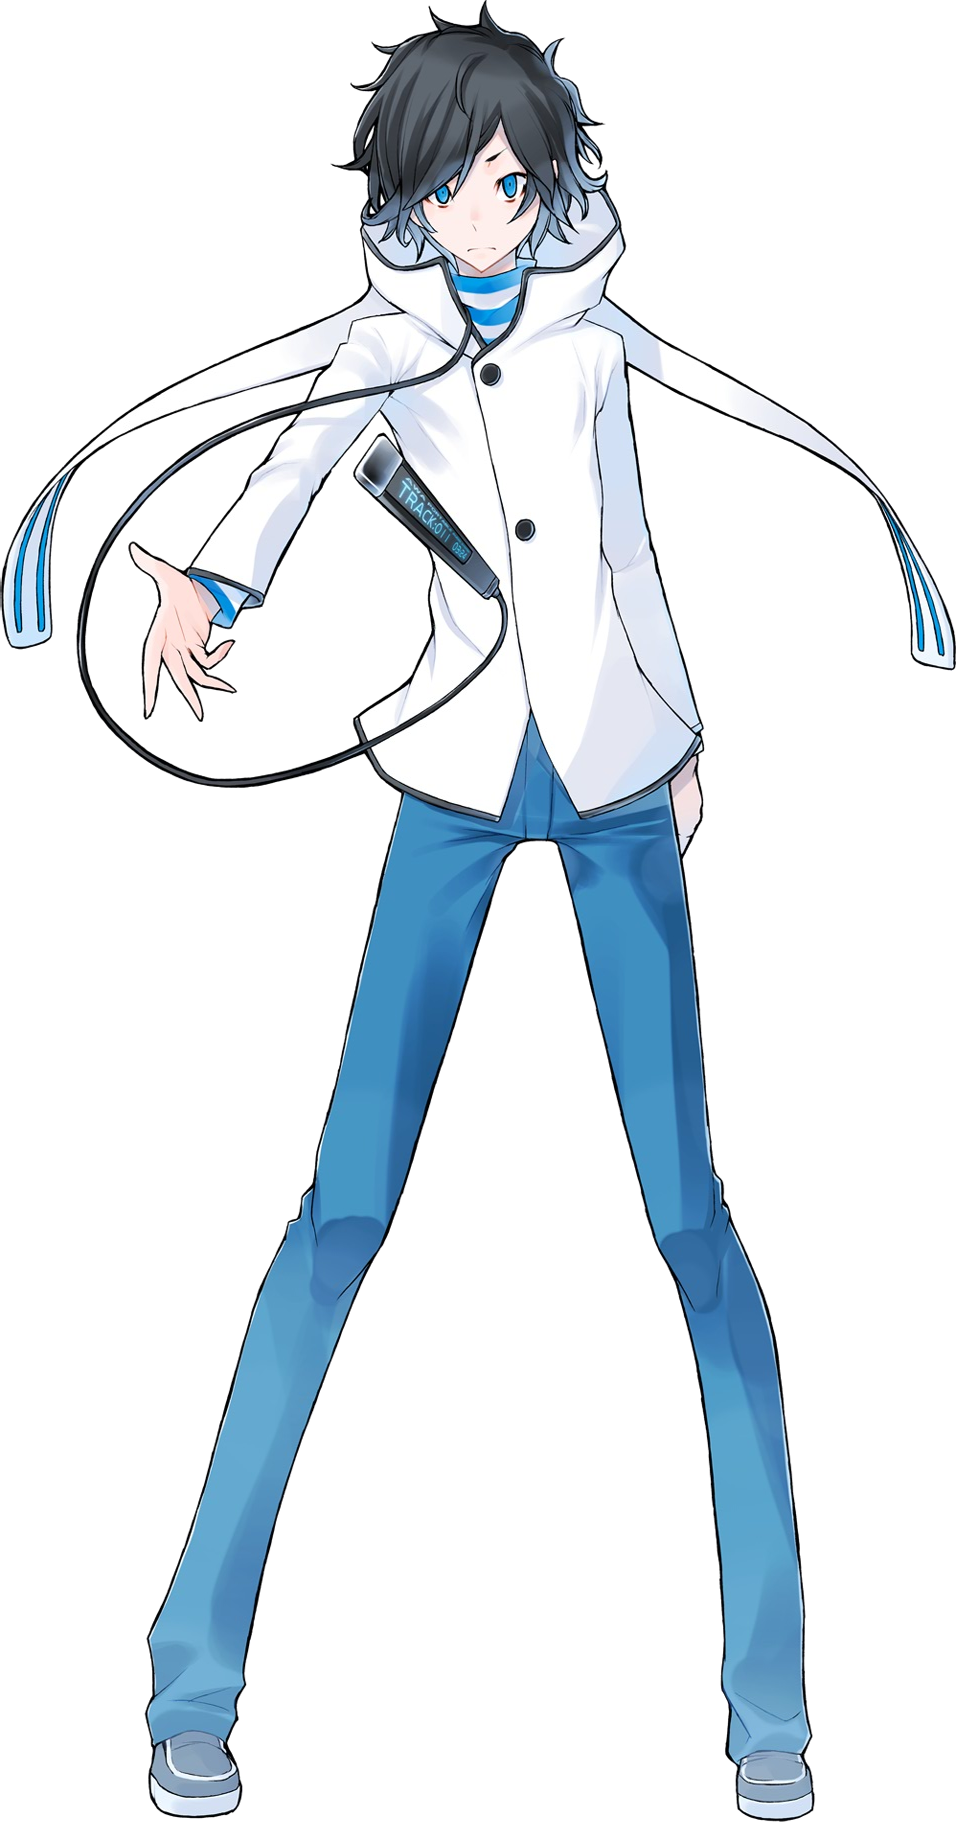 http://images2.wikia.nocookie.net/__cb20120329174435/megamitensei/images/4/43/2124237-hero.png